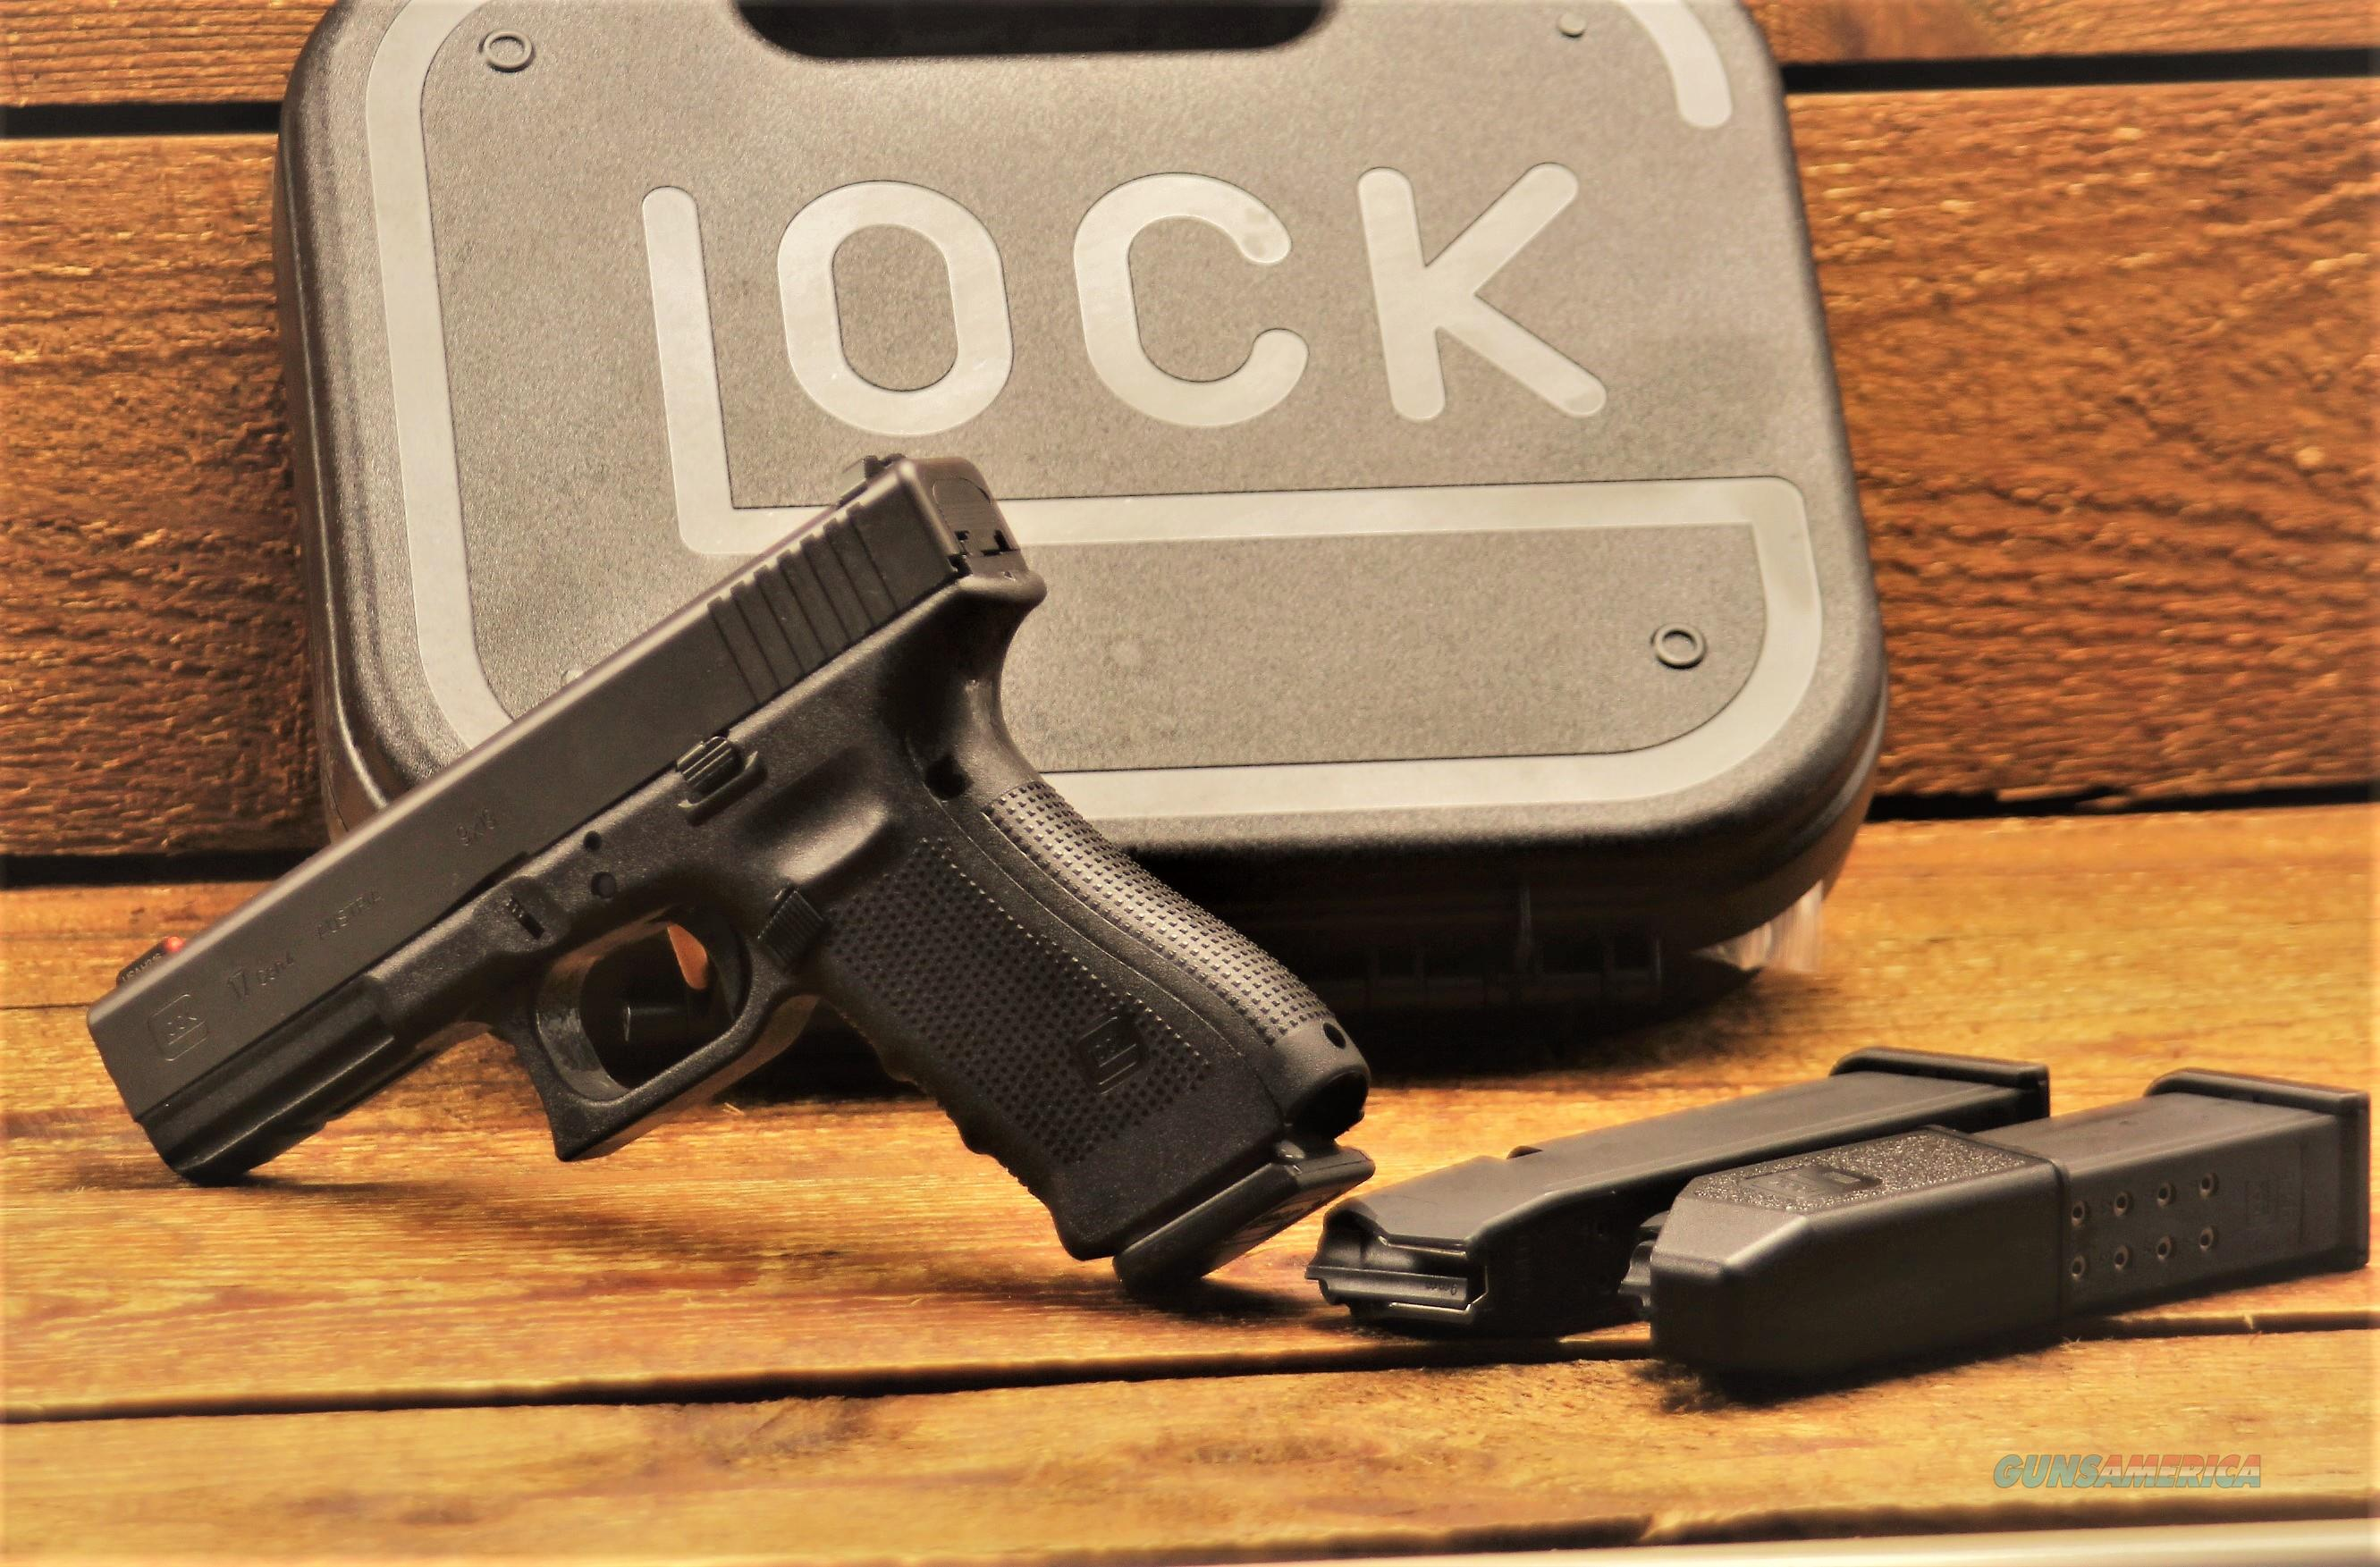 GLOCK 17 Gen 4  Polymer Frame  g17 GloPro Tritium Front Night Sight PG1750503 764503914478 GLOCK 17  law enforcement elite military EASY PAY $53  Guns > Pistols > Glock Pistols > 17